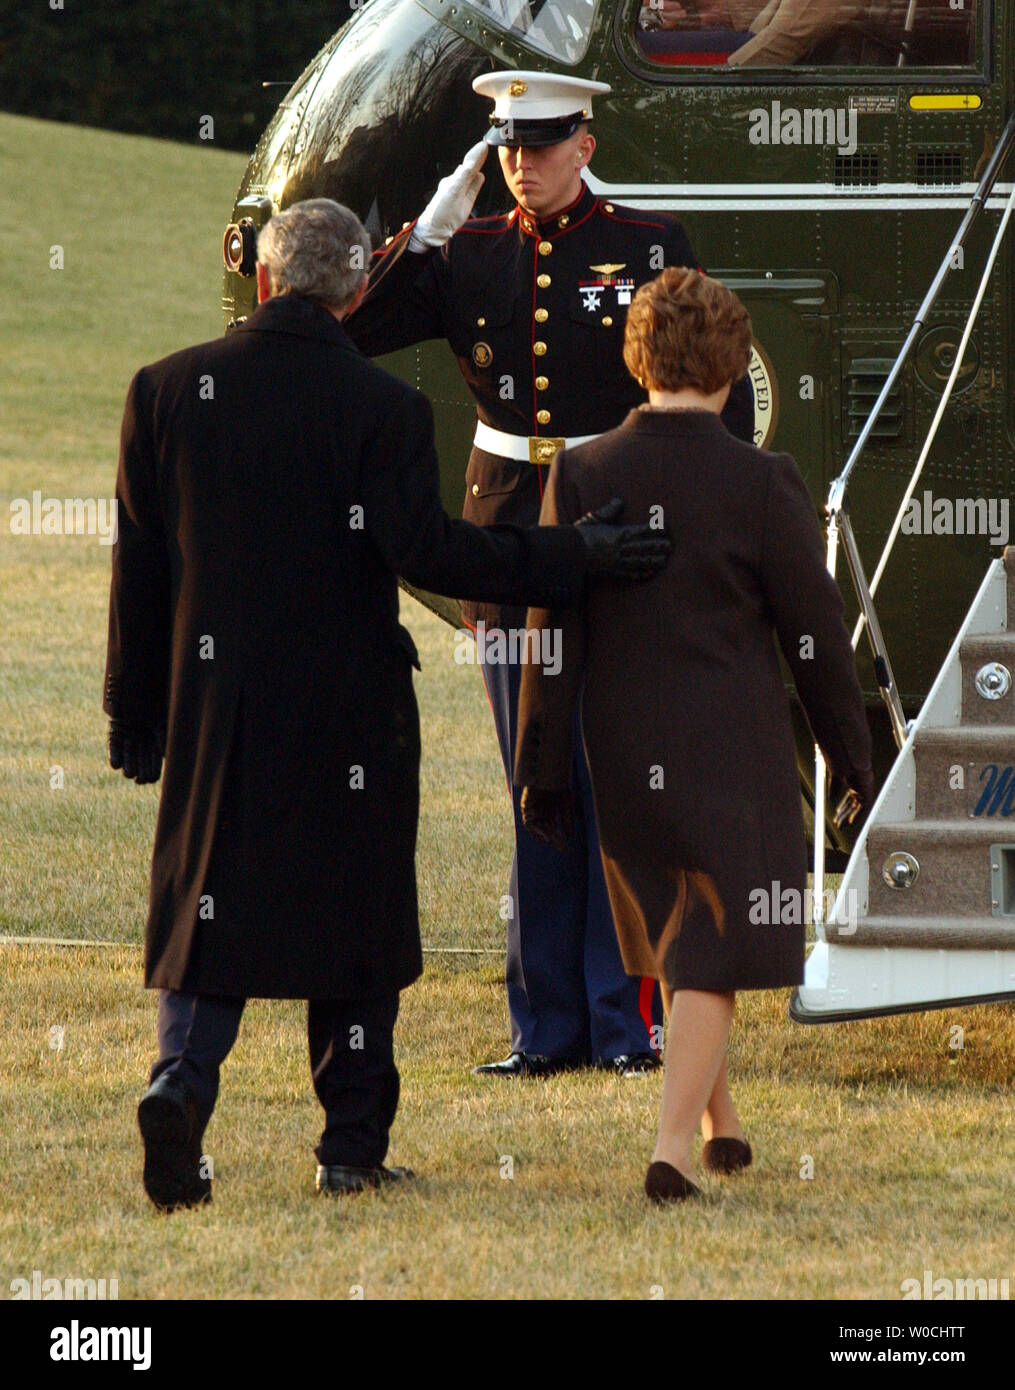 A Marine salutes as U.S. President George W. Bush and First Lady Laura Bush prepare to embark on Marine One on the South Lawn of the White House on Feb. 20, 2005. Bush is en route to Brussels, Belgium, for meetings with world leaders.   (UPI Photo/Roger L. Wollenberg) - Stock Image